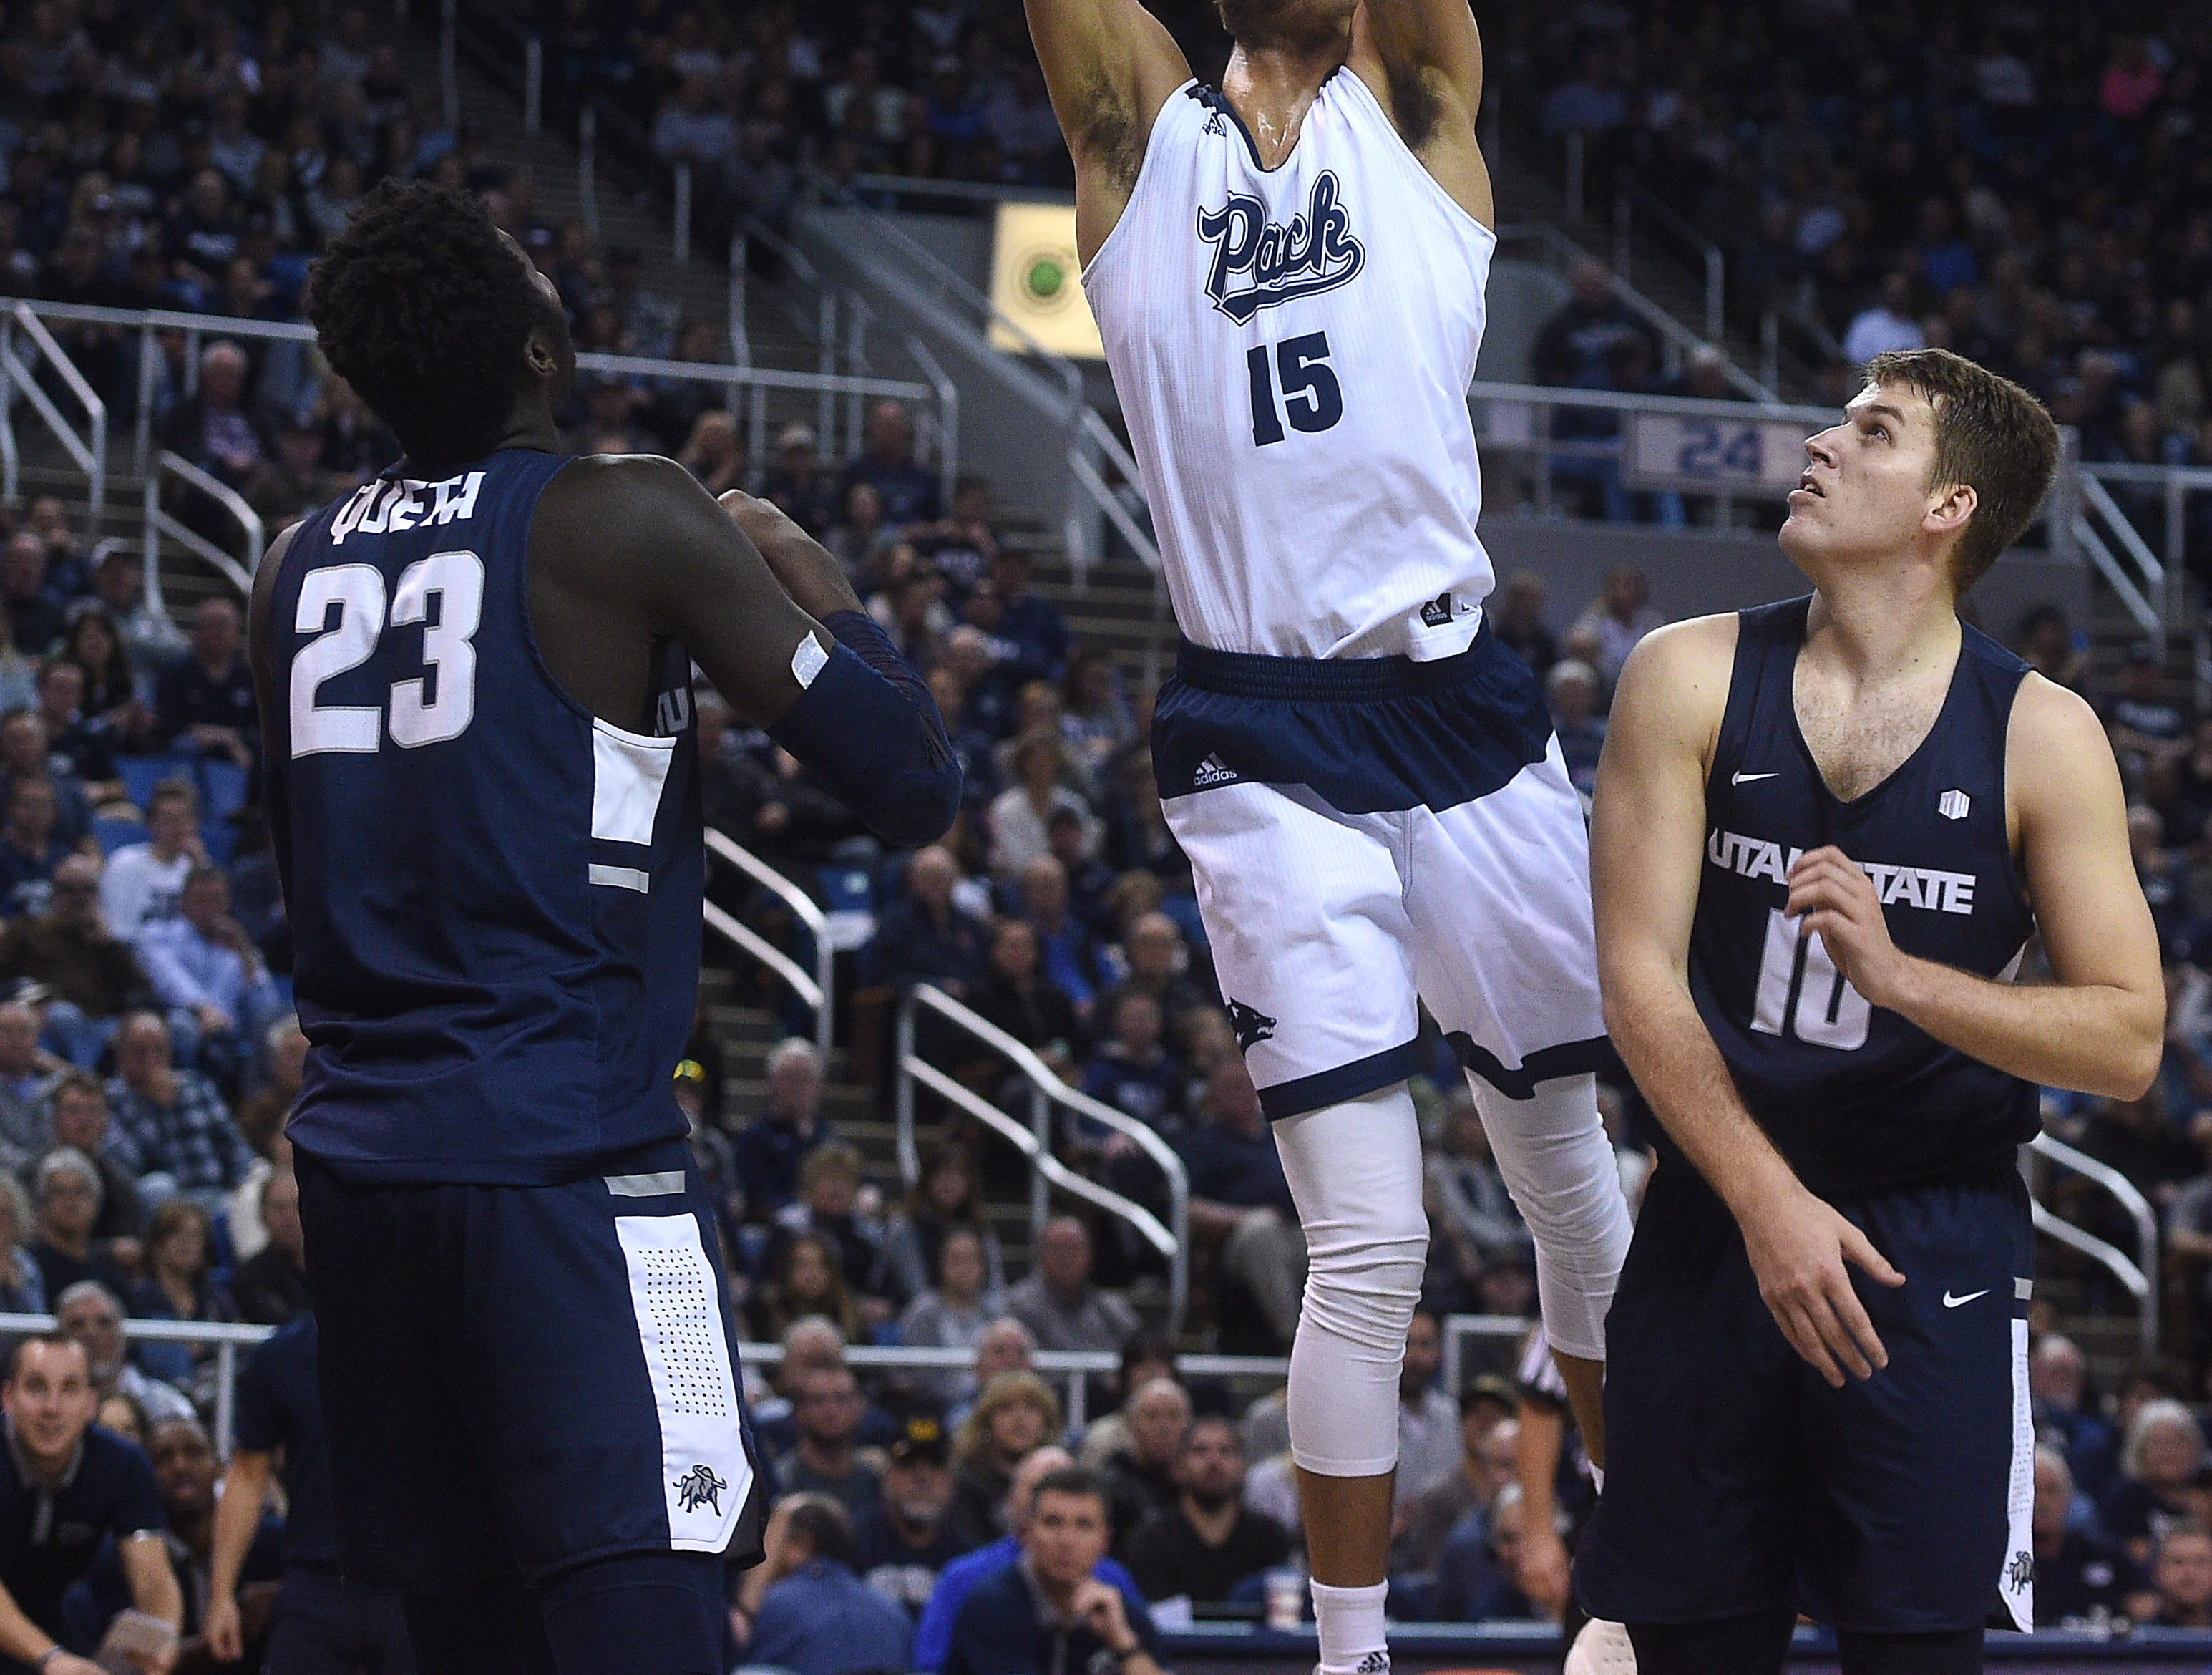 Nevada's Trey Porter shoots while taking on Utah St. during their basketball game at Lawlor Events Center in Reno on Jan. 2, 2019.